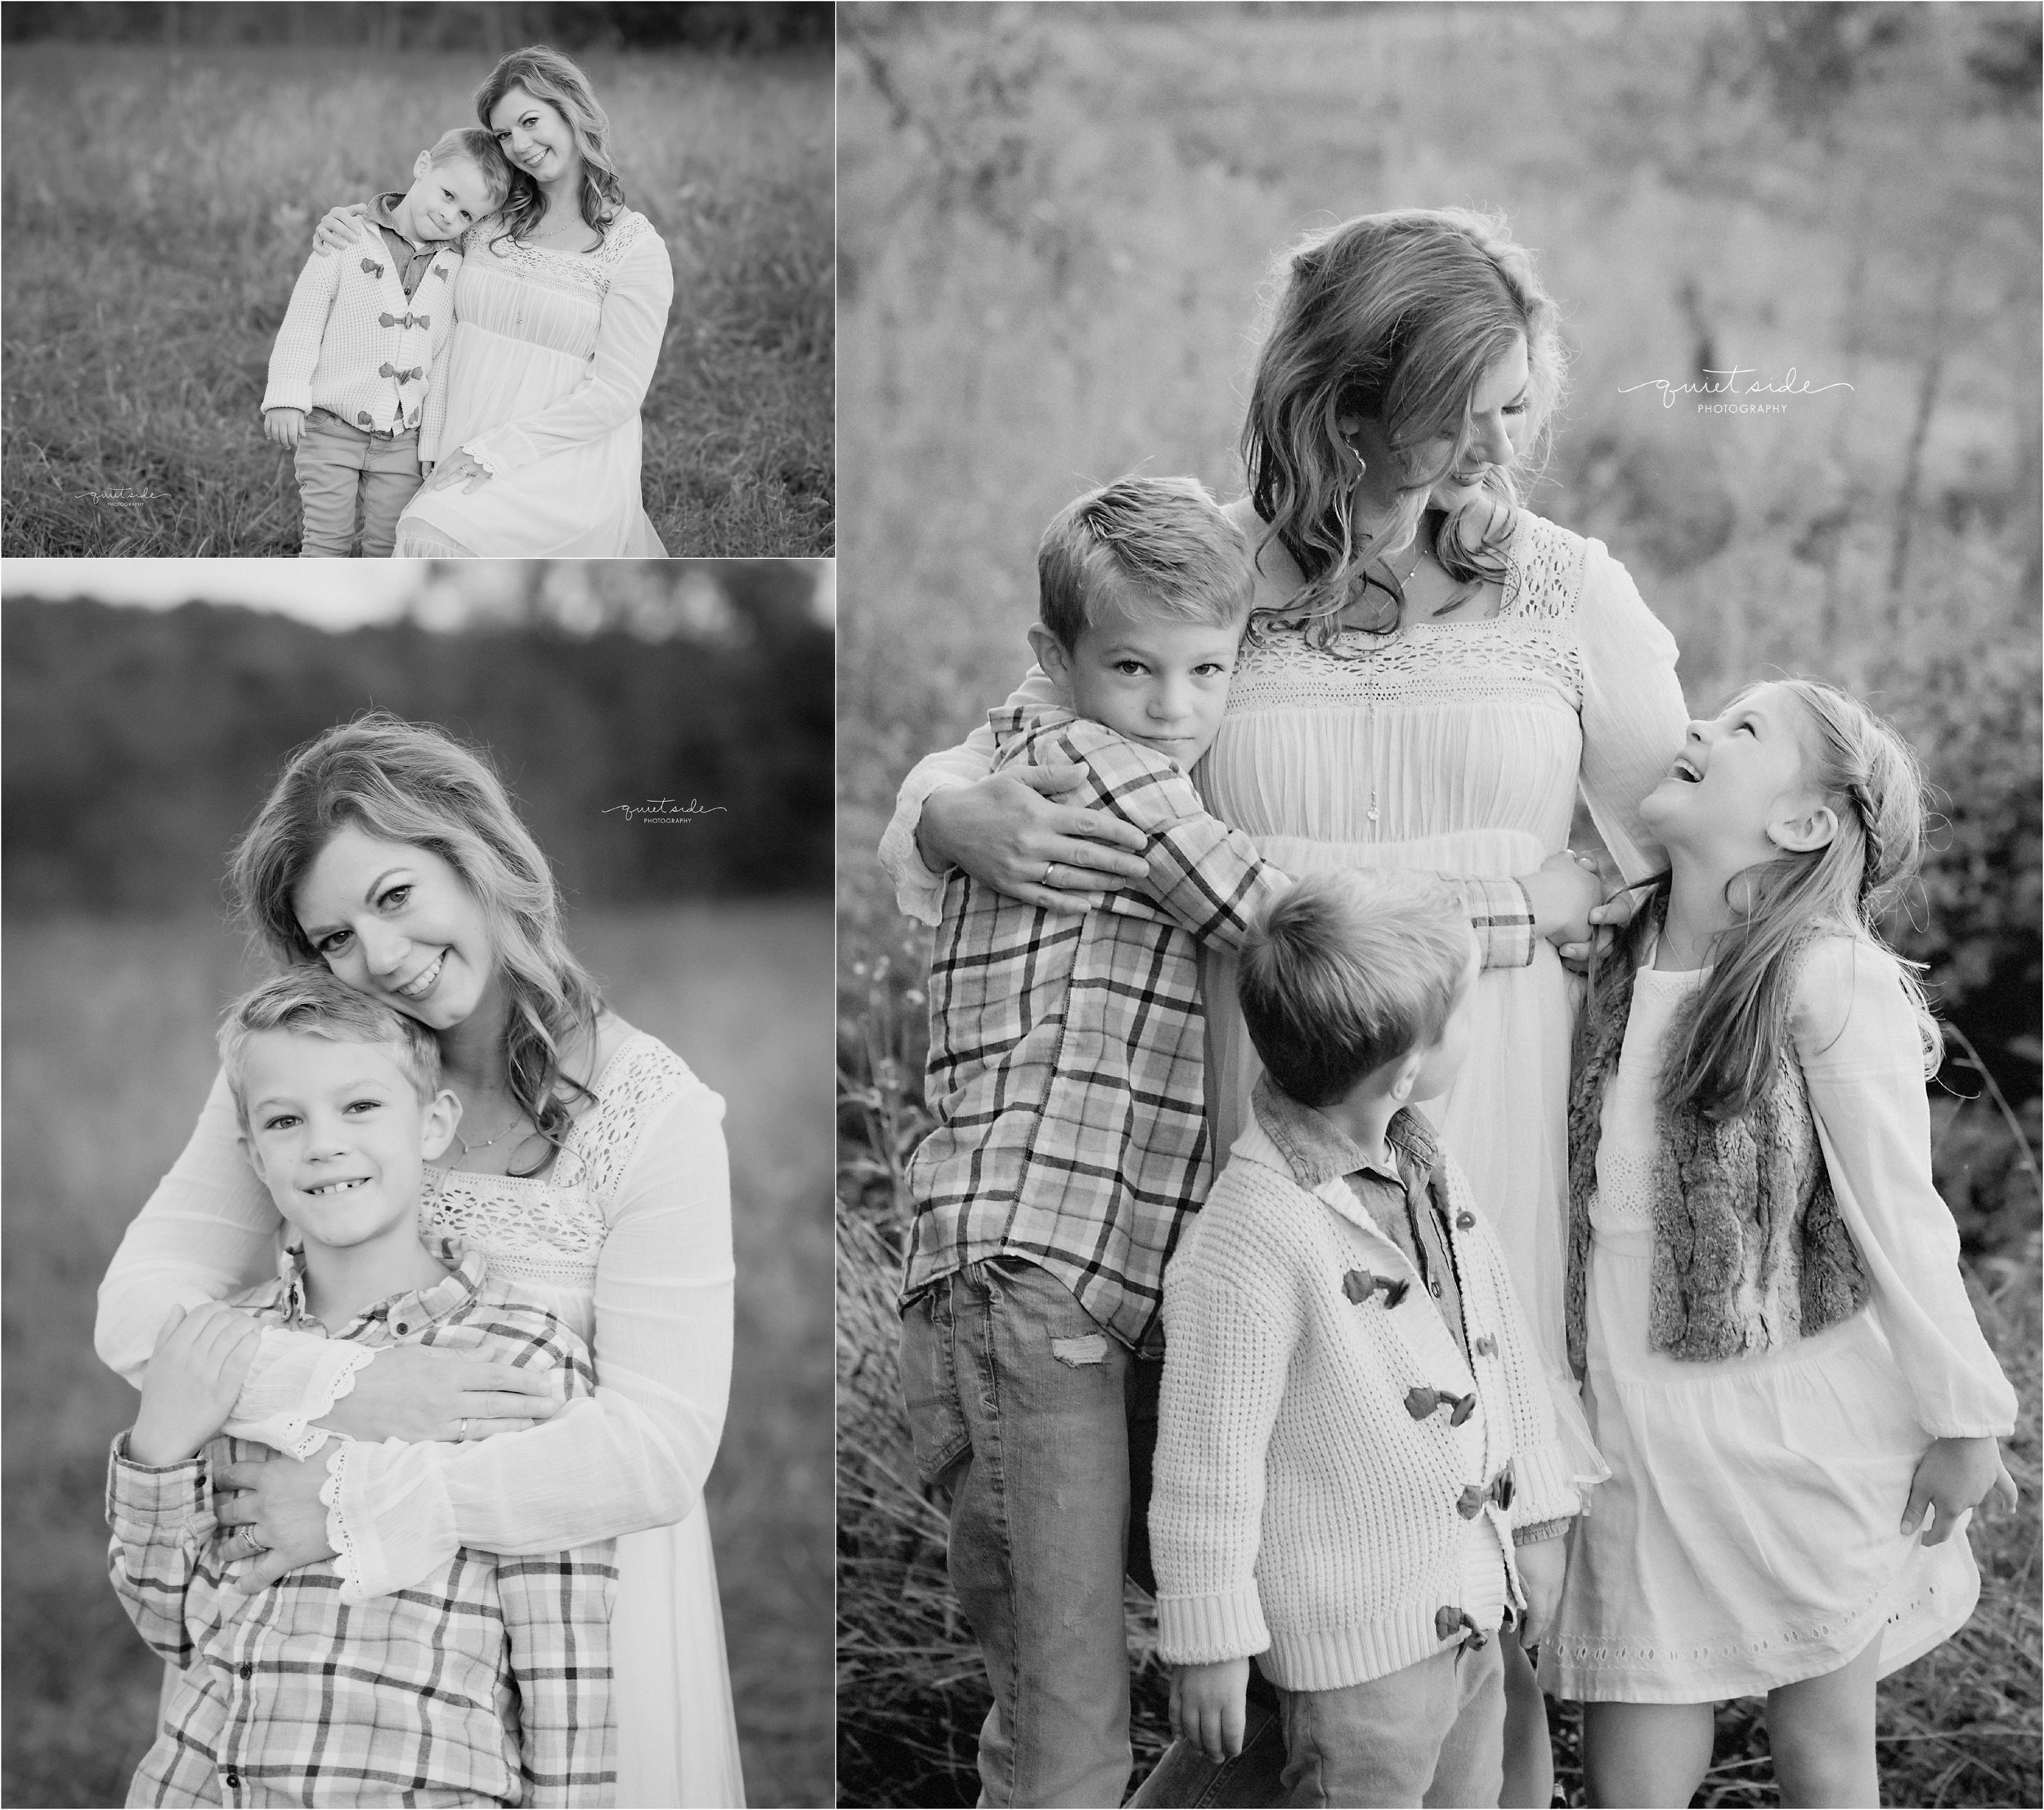 QuietSidePhotography-Purcellville, VA- Family-Photographer-Motherhood-Familyof5-SilverbrookFarm-GoldenHour-Sunset-Family-Loudoun County-Virginia.jpg